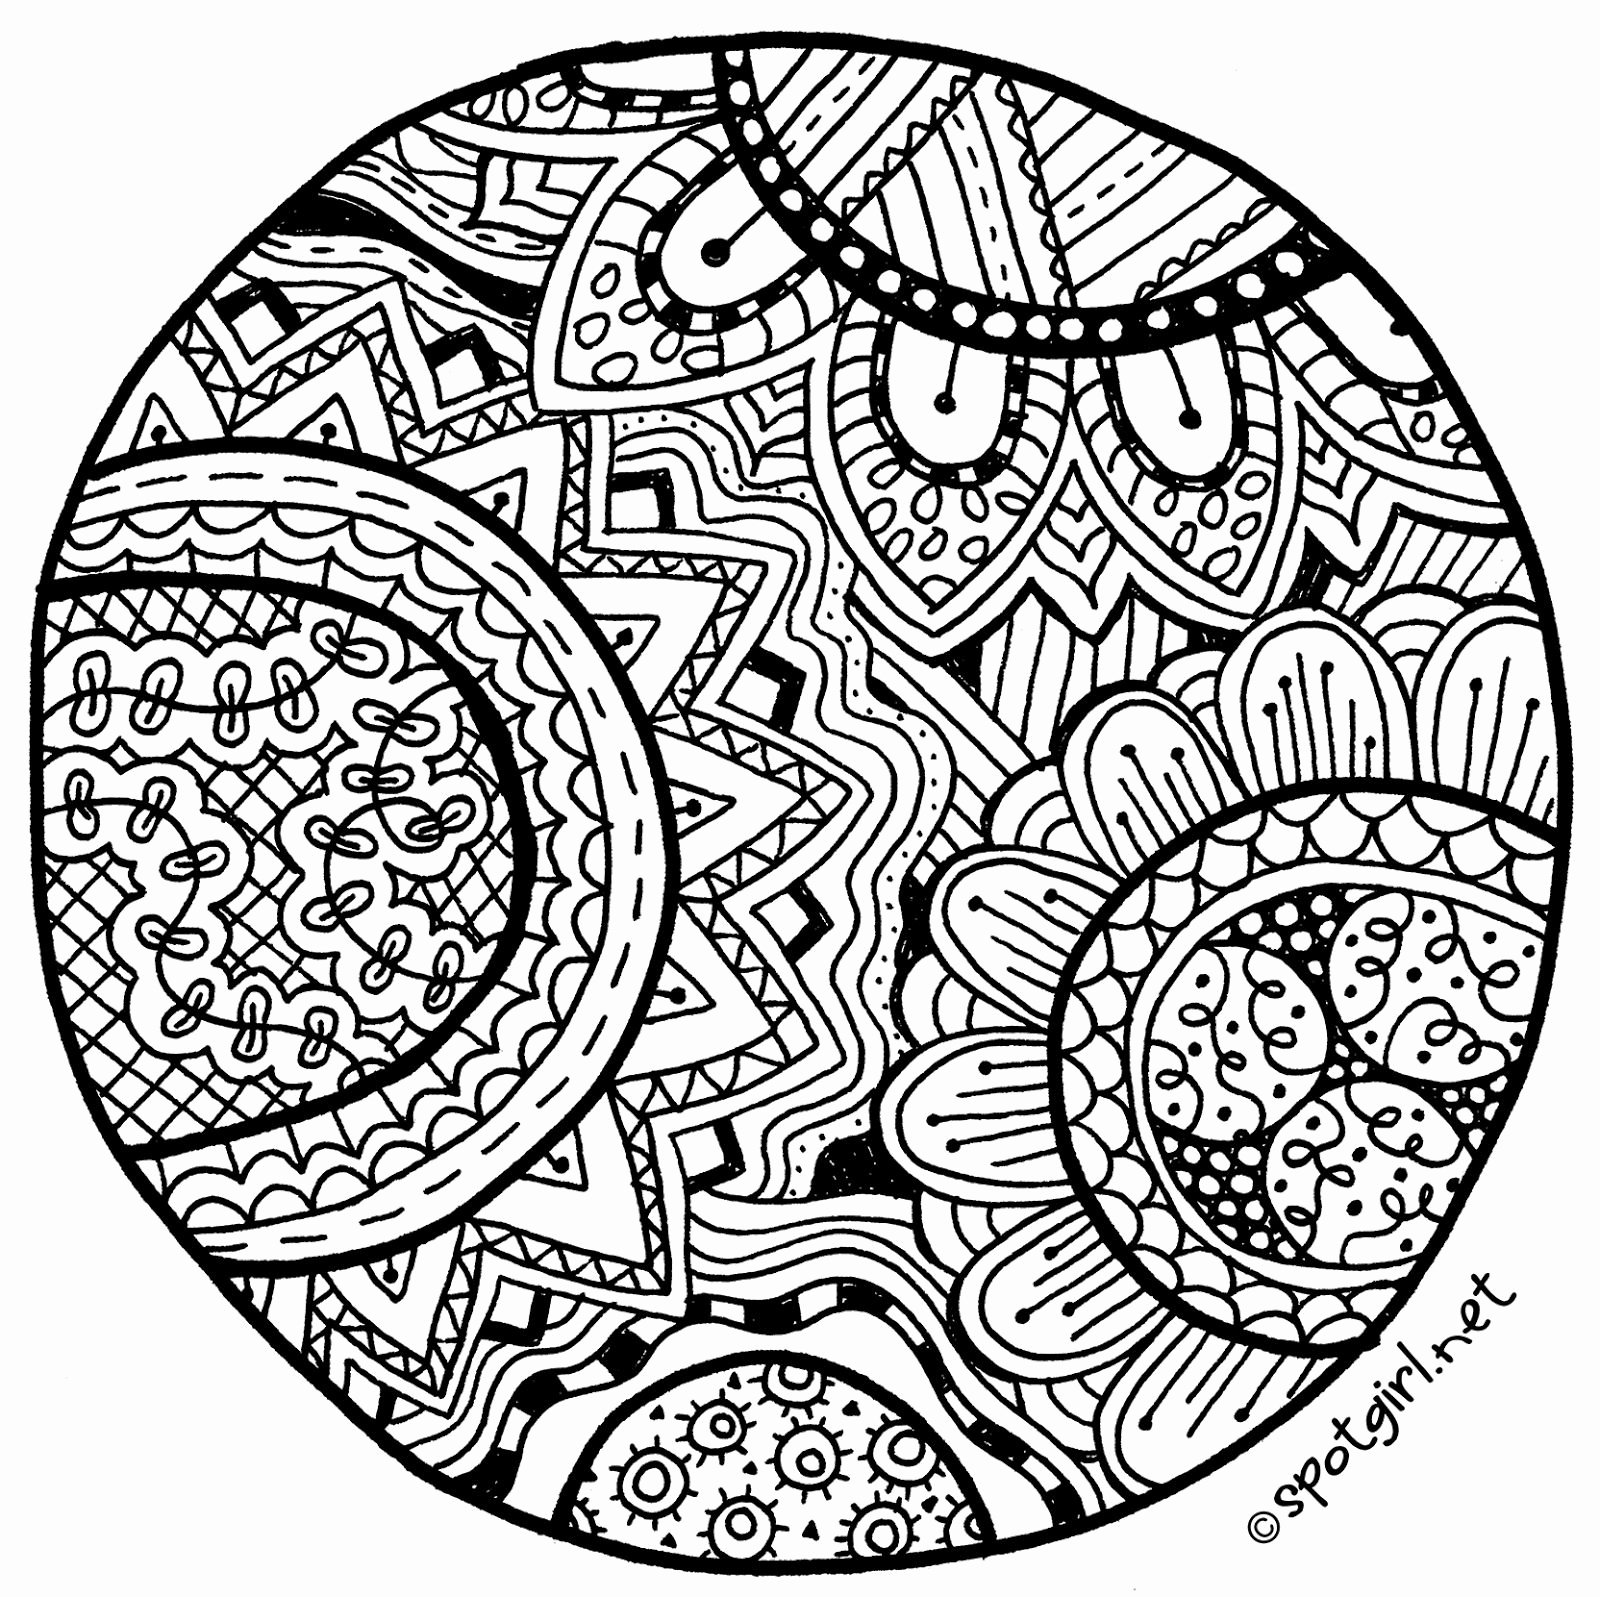 Zentangle Patterns to Print Lovely Zentangle Medallion Printable From Spotgirl Hotcakes